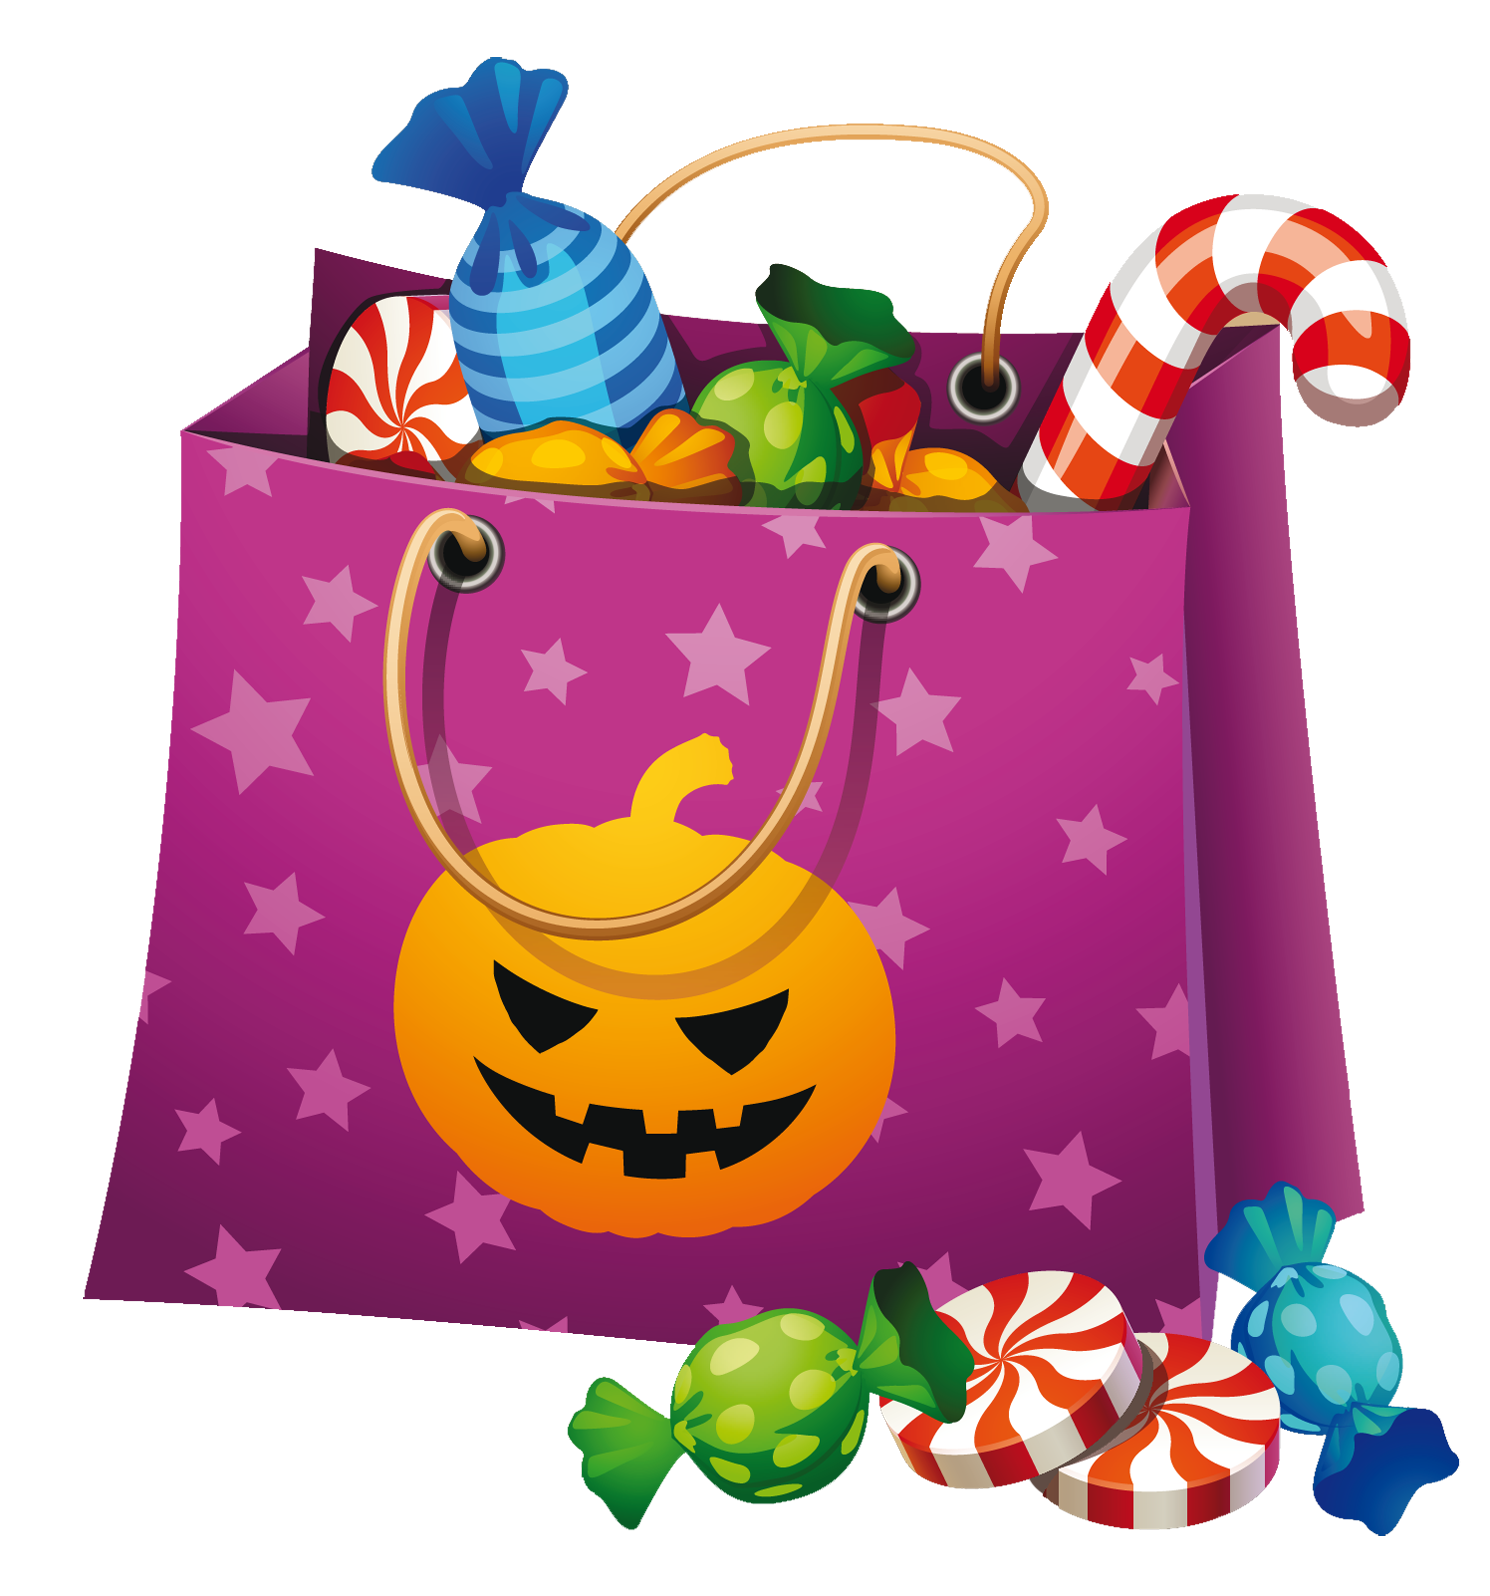 Halloween trick or treat clipart svg freeuse download Halloween Png Candy Bag Clipart | clip art | Pinterest | Halloween ... svg freeuse download